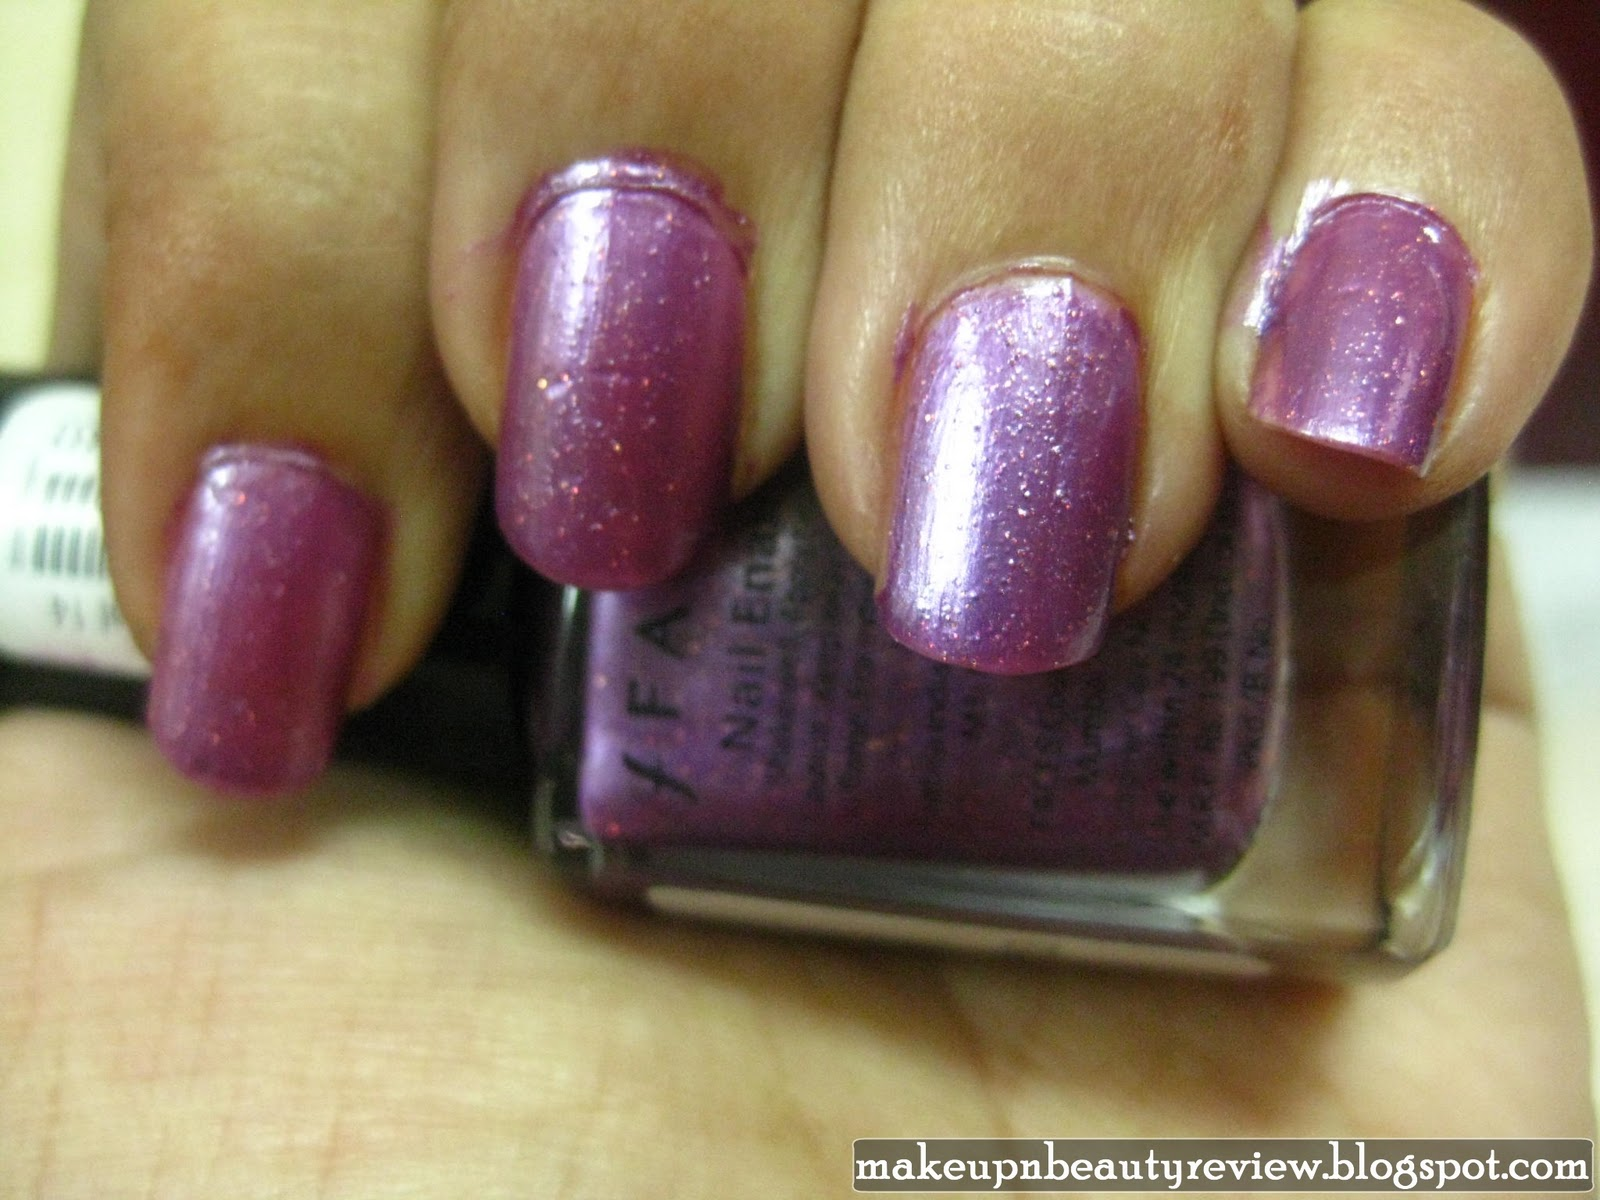 Faces Canada Nail Enamel Review And Swatches Glitter Amp Gorgeous